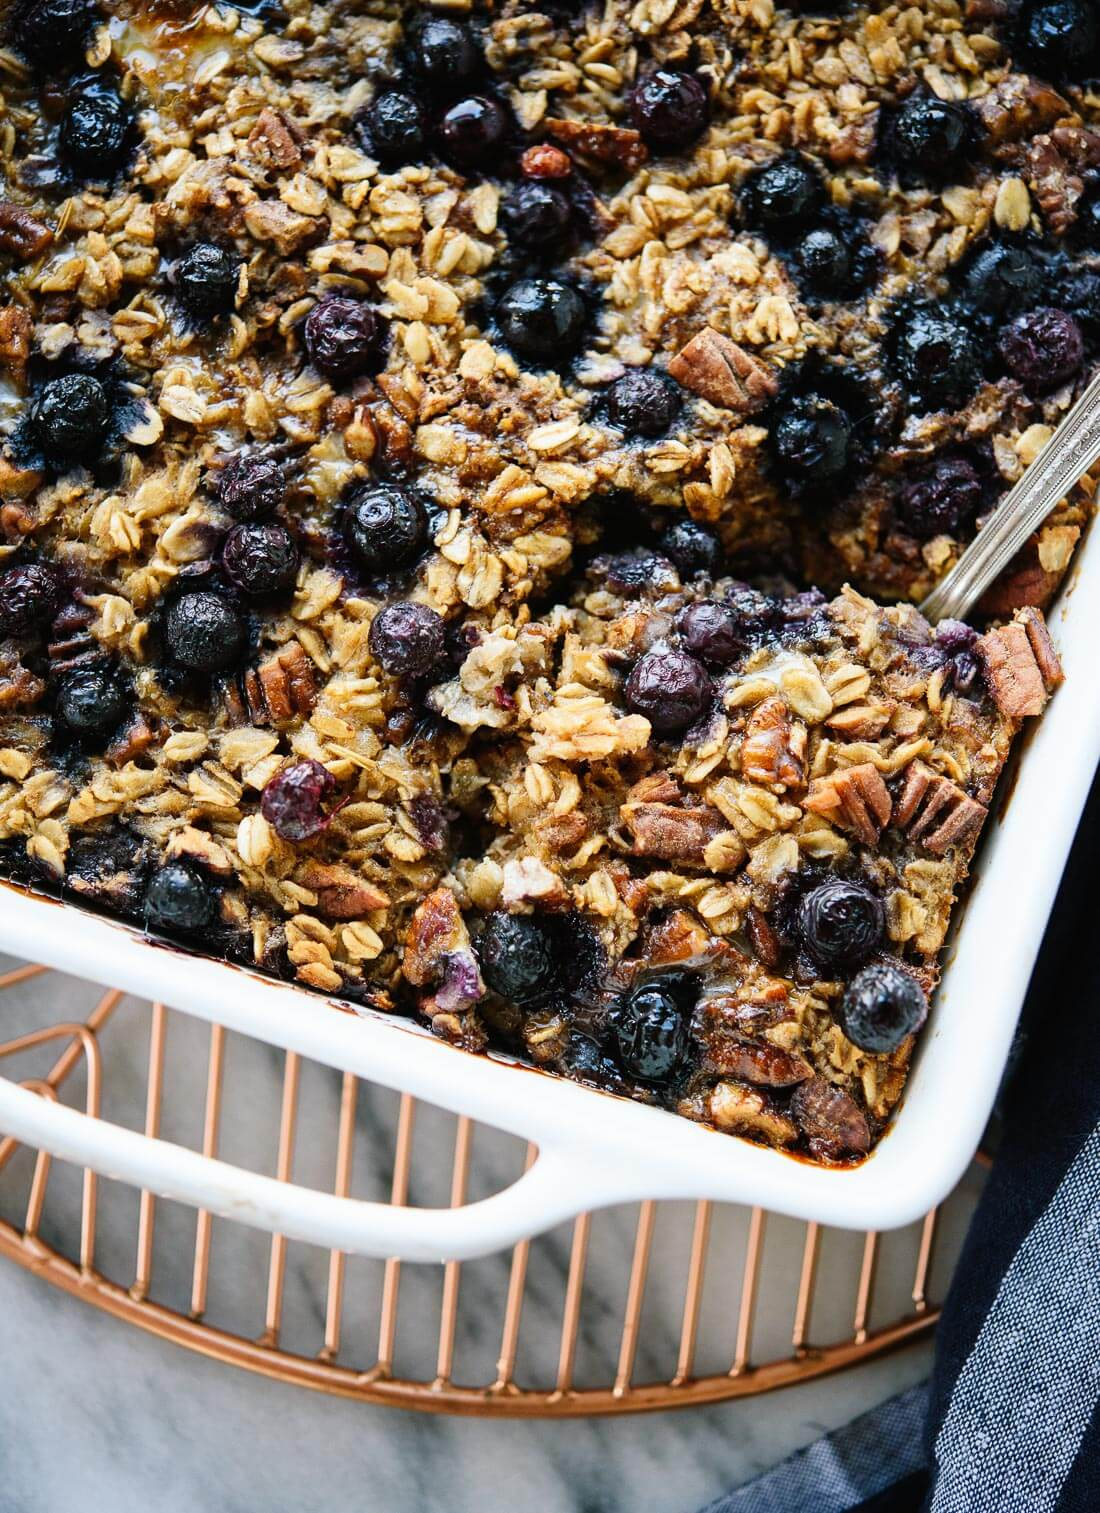 Amazing blueberry baked oatmeal, so good with yogurt in the mornings! - cookieandkate.com